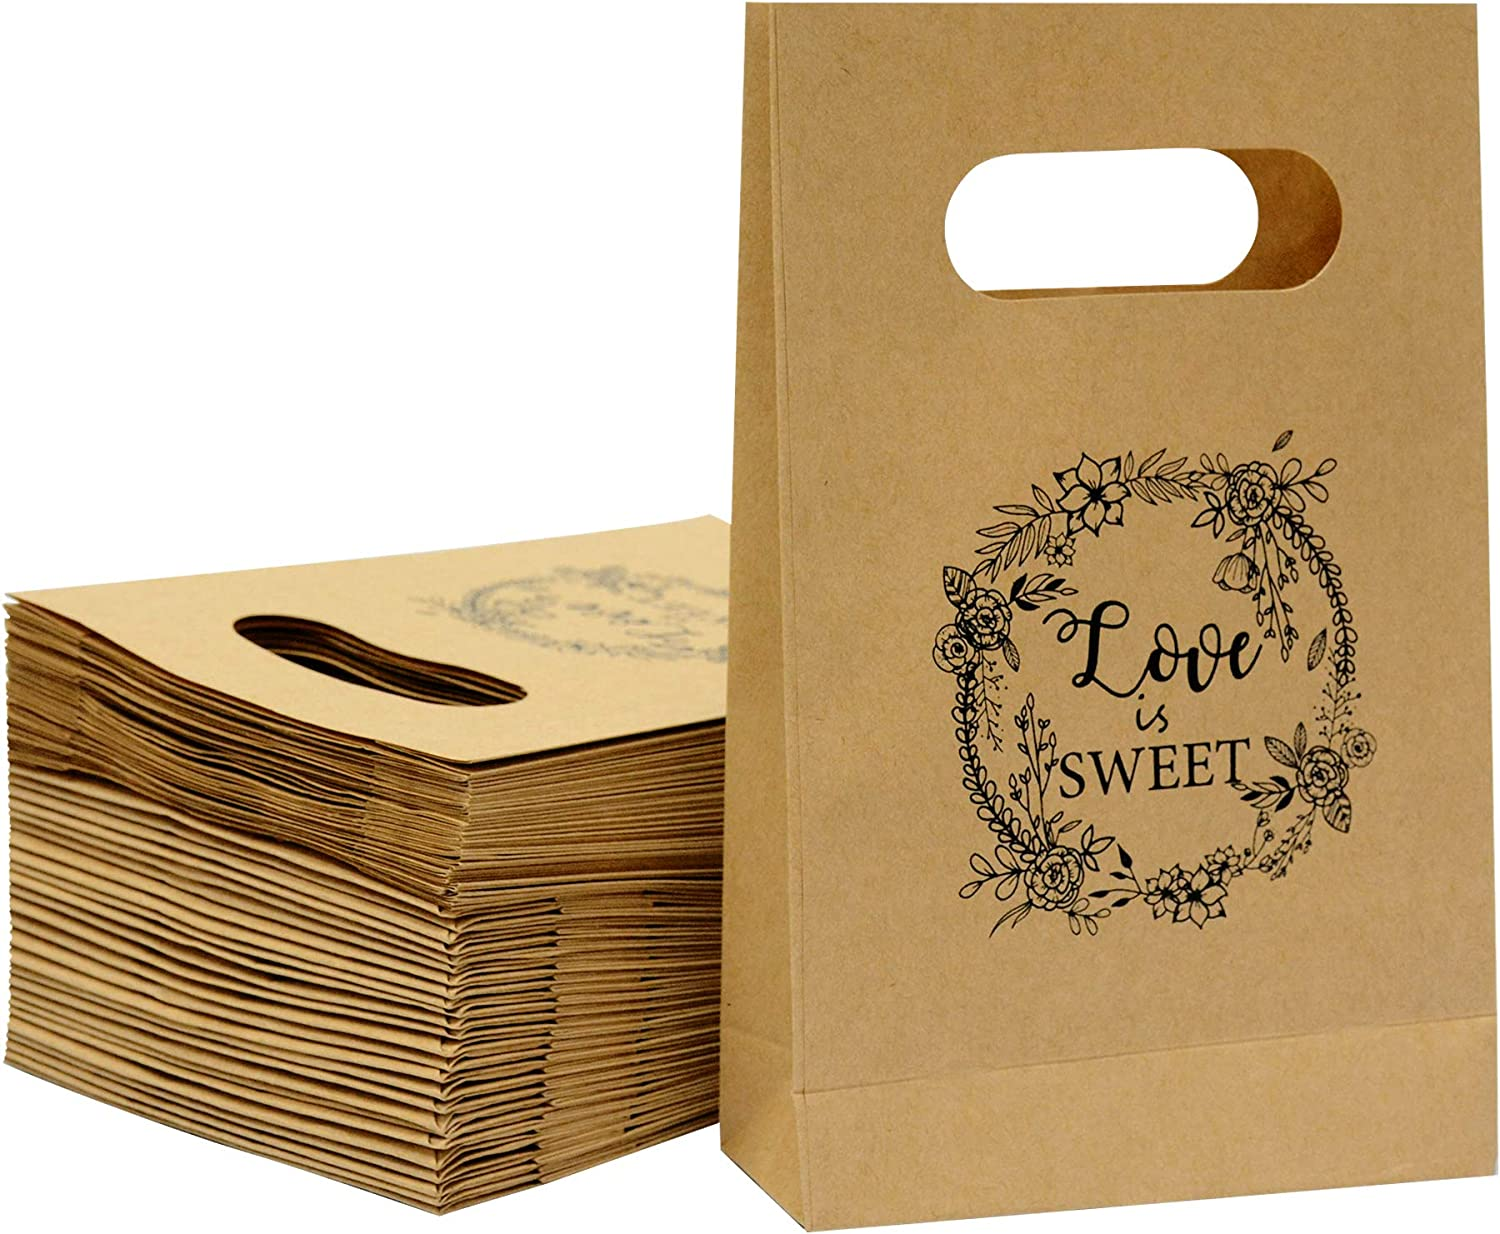 Brown Craft Paper Bag with Handled Friday Night Craft Treat Bags 8.5 * 5.5 * 2 Inch for Wedding Party Business (50pcs)